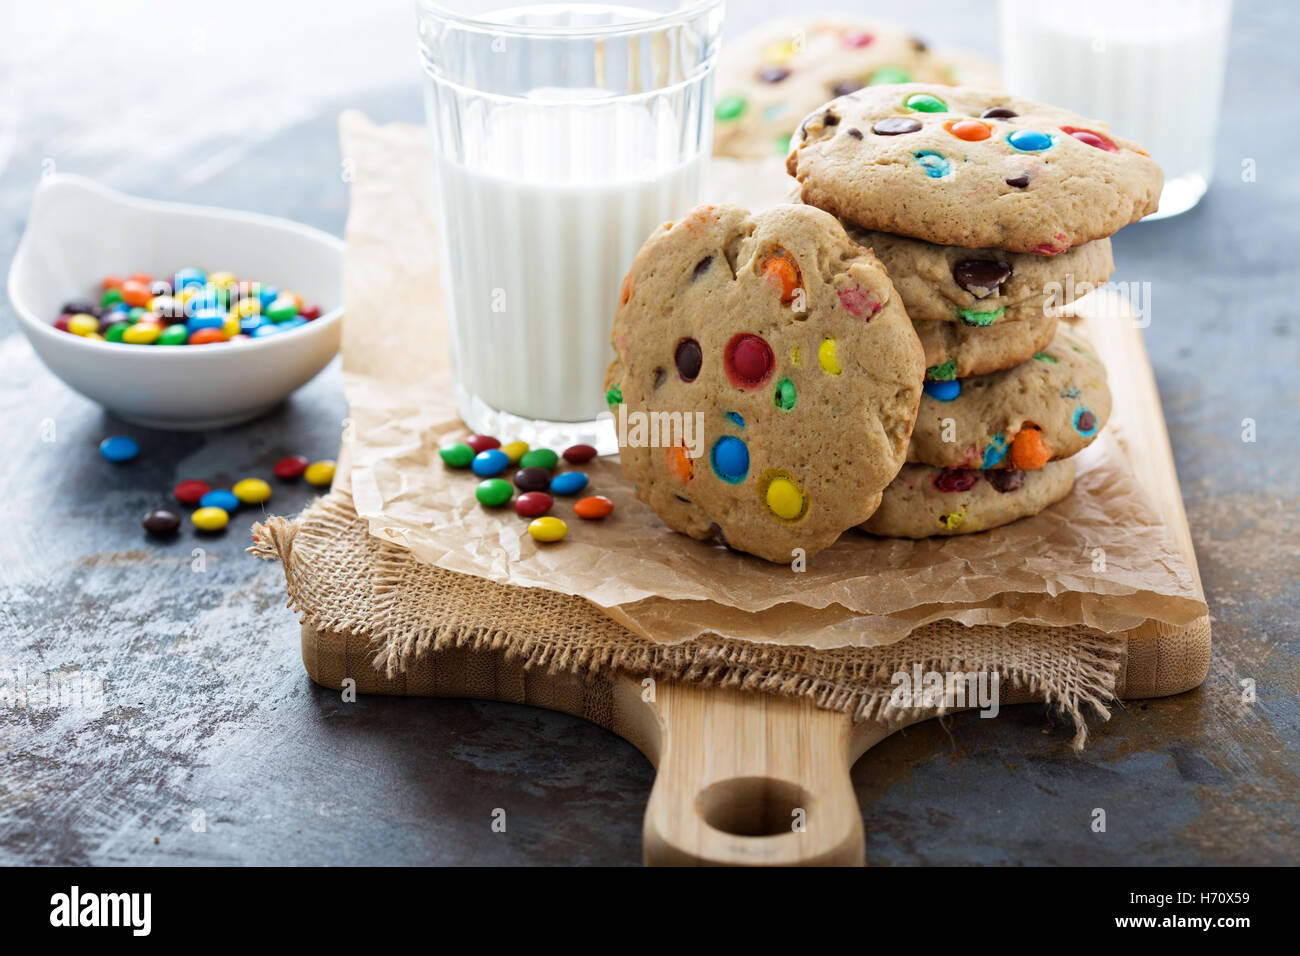 Chocolate chip and candy cookie - Stock Image